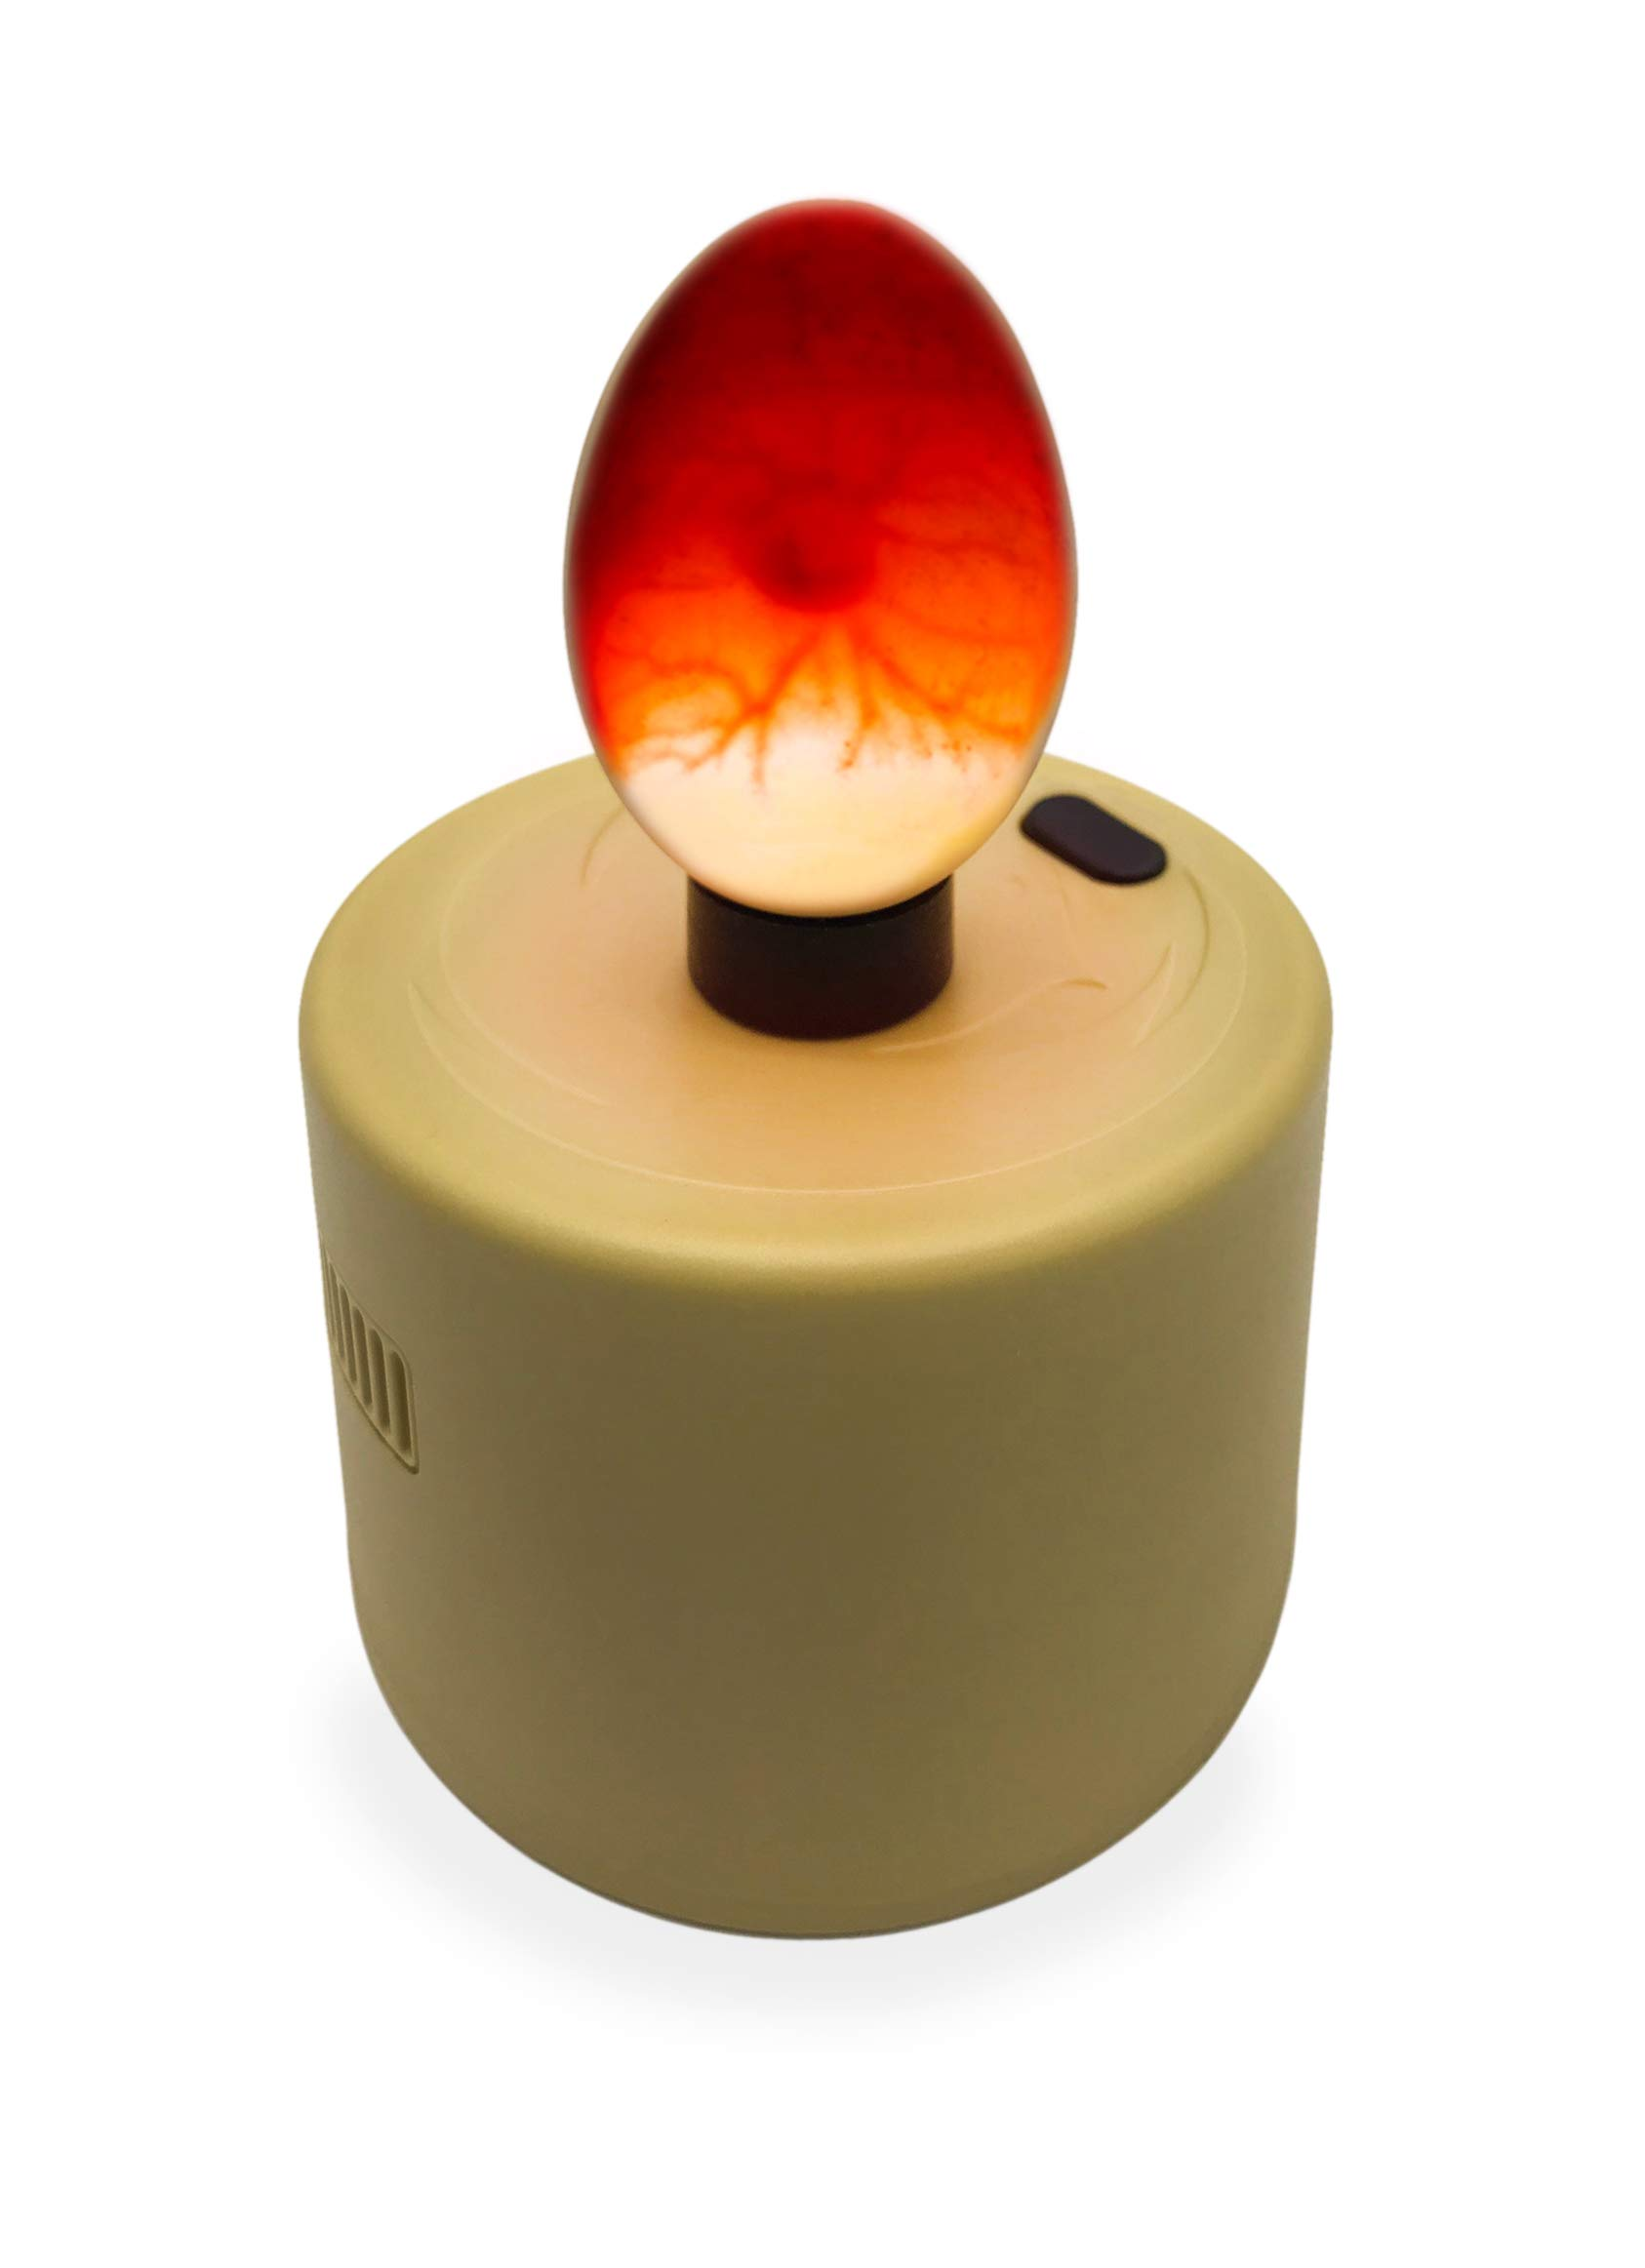 Titan Incubators High Intensity LED Chicken Egg Candler/Tester - Battery Powered by Titan Incubators